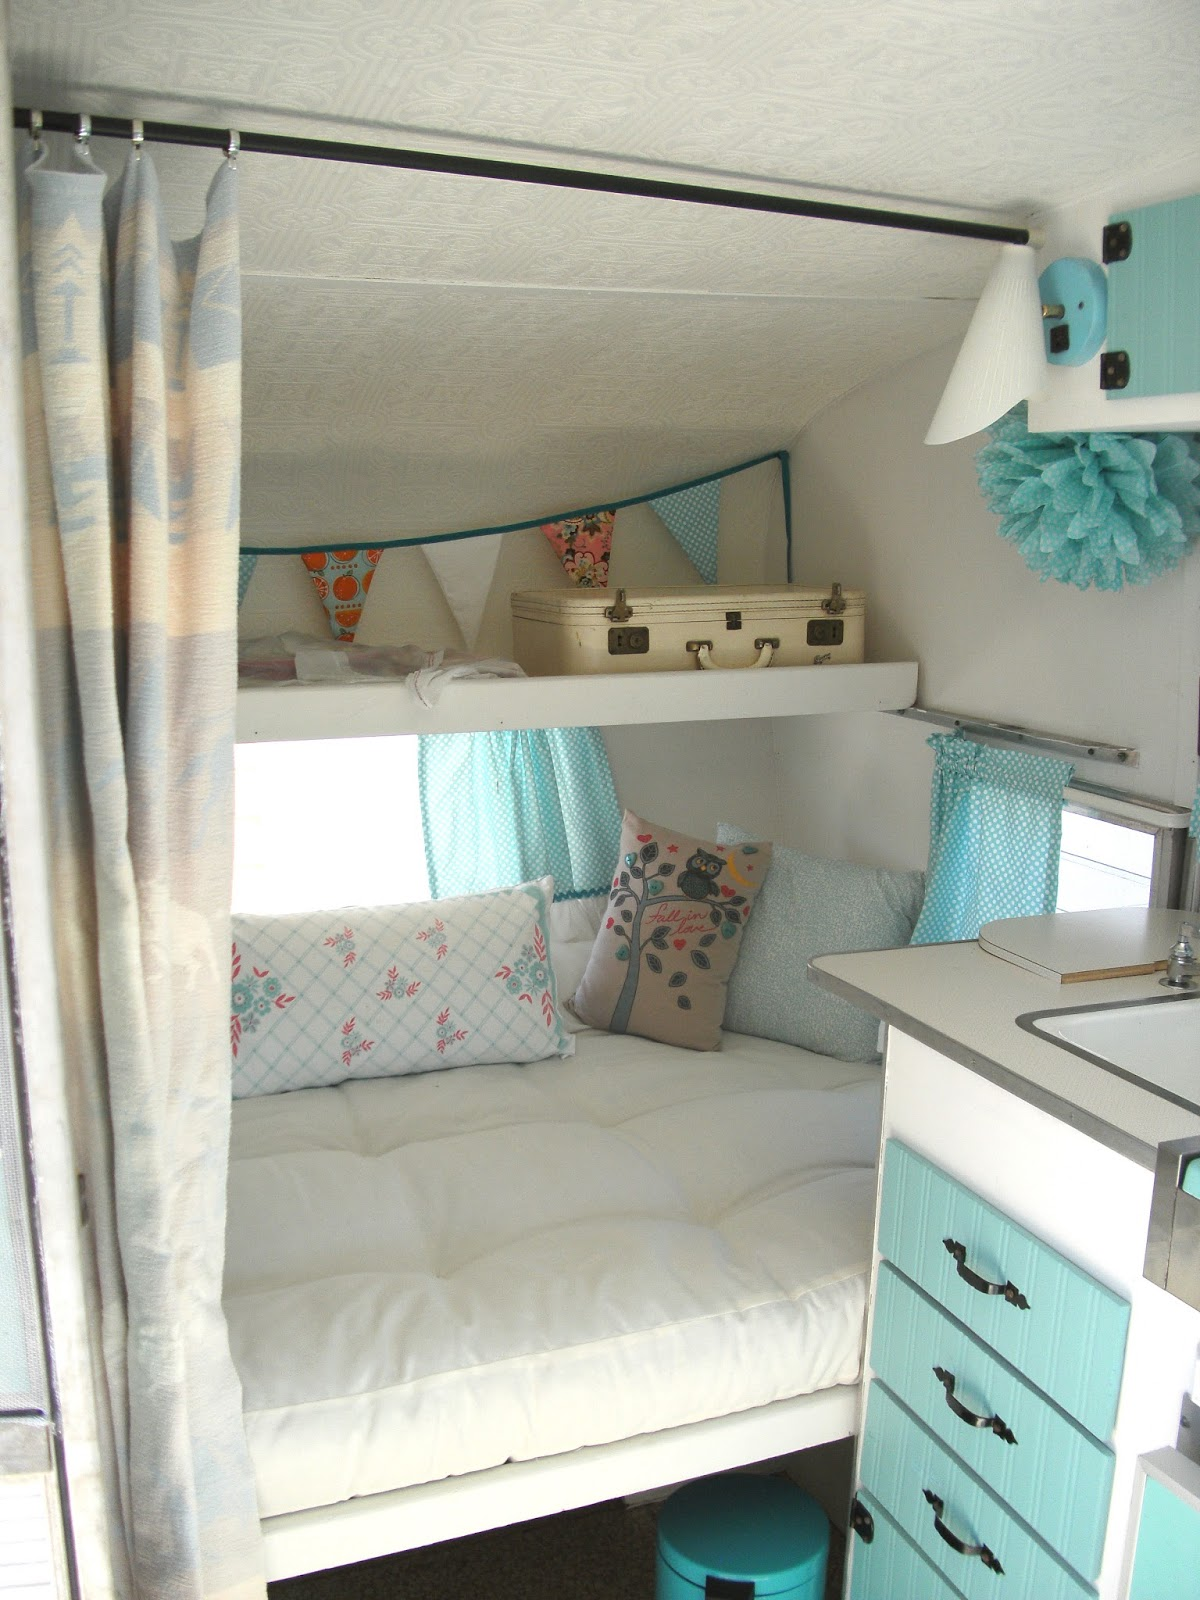 An Update On Maizy My Little Vintage Trailer